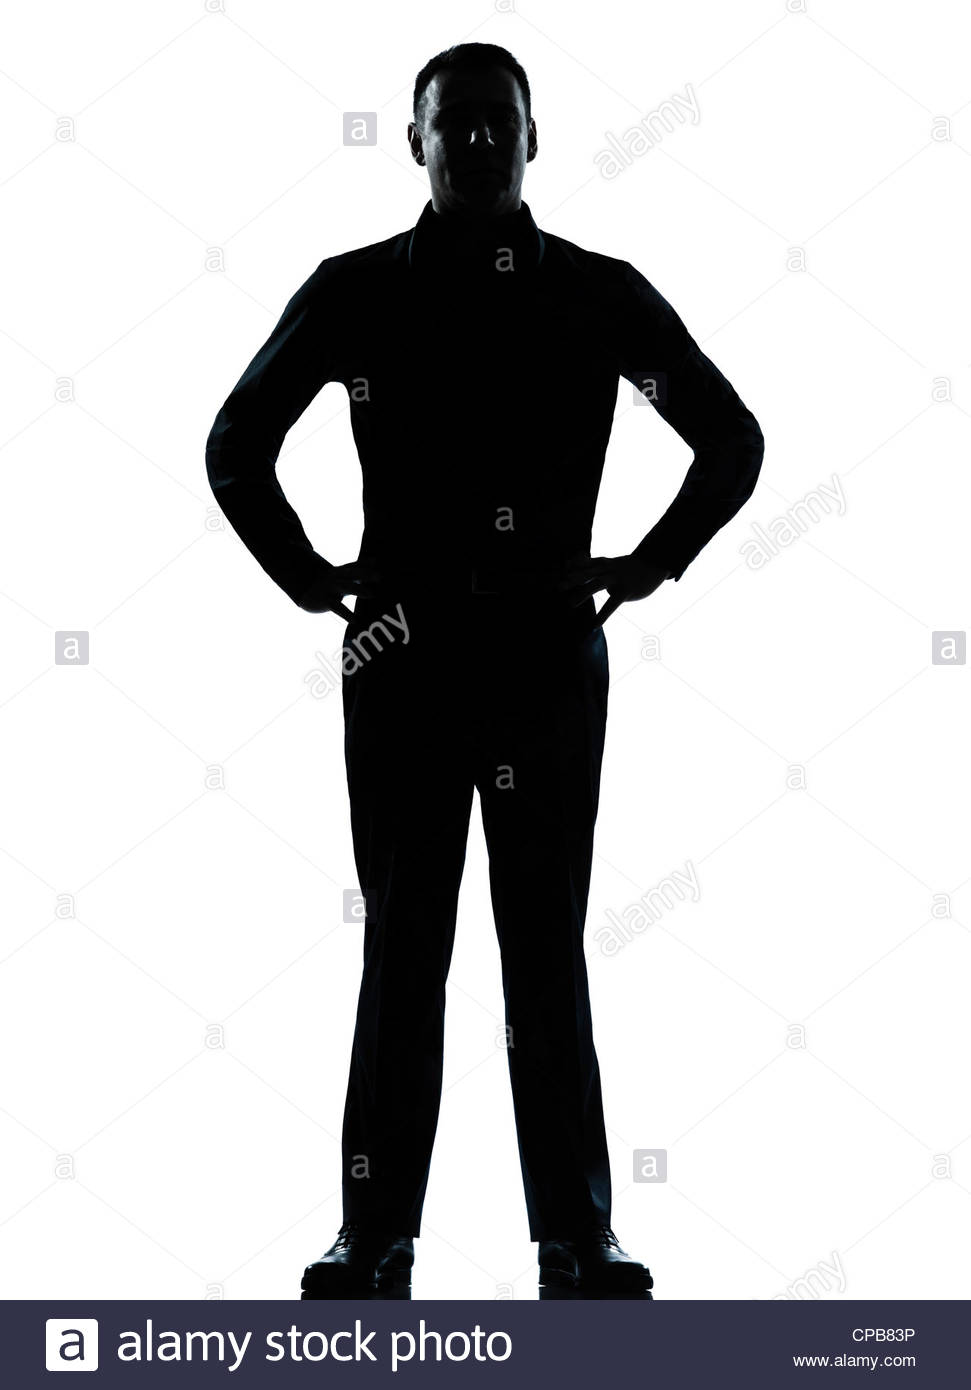 971x1390 Man Standing Silhouette Isolated Stock Photos Amp Man Standing